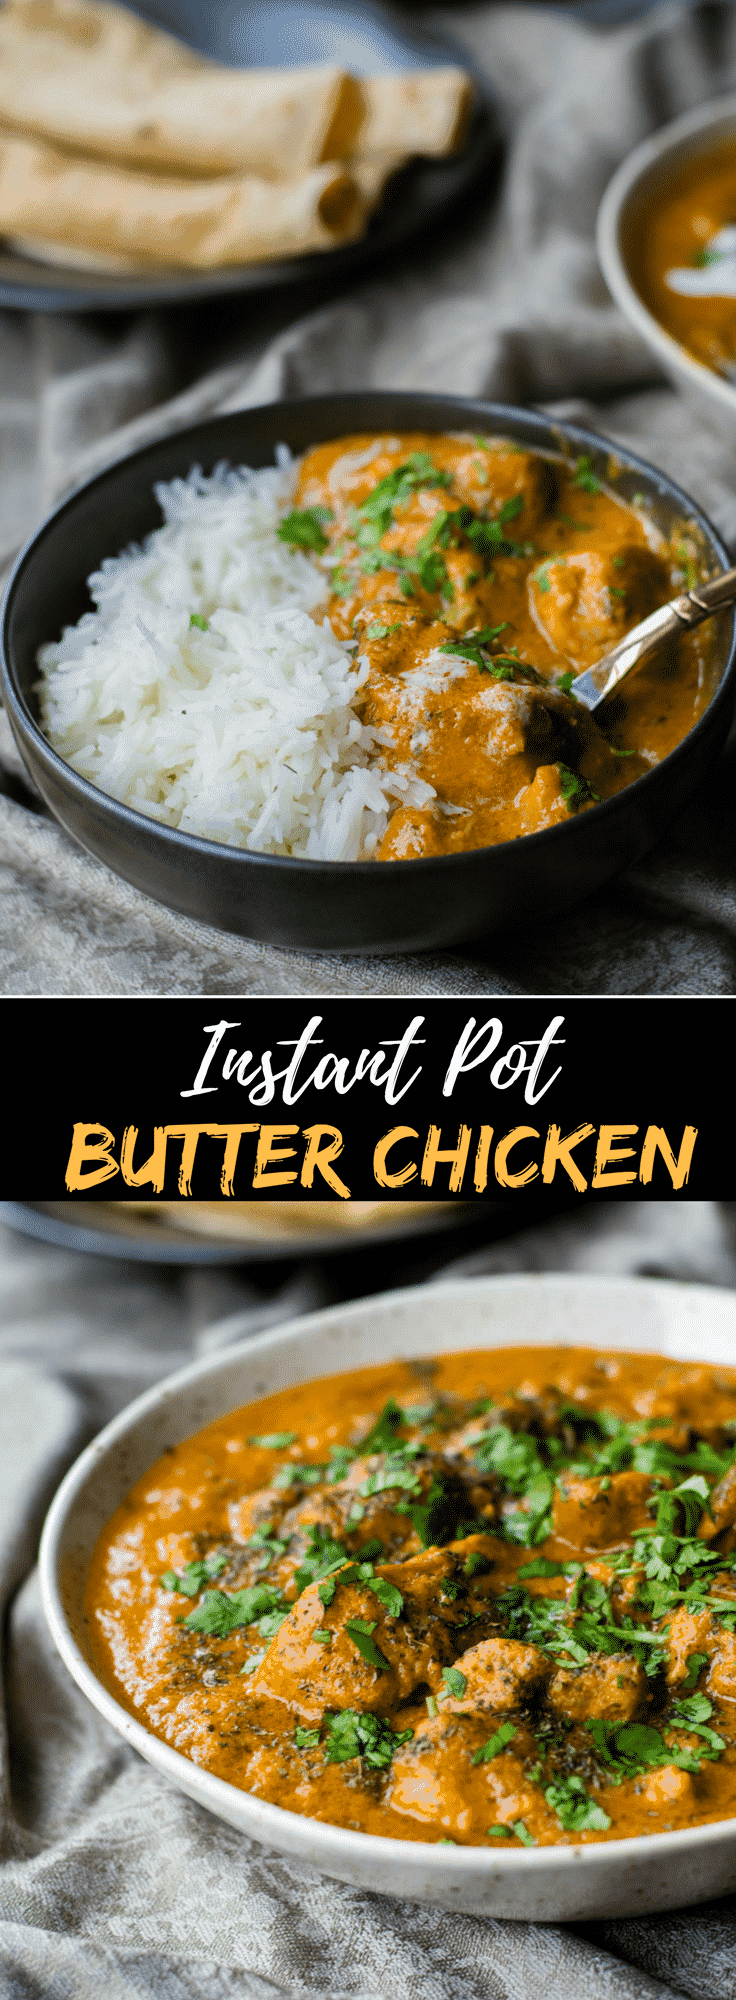 This authentic and 30-minute Indian Butter chicken recipe is so easy and delicious that you will soon make it part of your weekly dinner menu. Make this murgh makhani right at home in an Instant Pot for the most flavorful and moist chicken you've ever tasted. #instantpotrecipe #chickenrecipe #indianfood #butterchicken